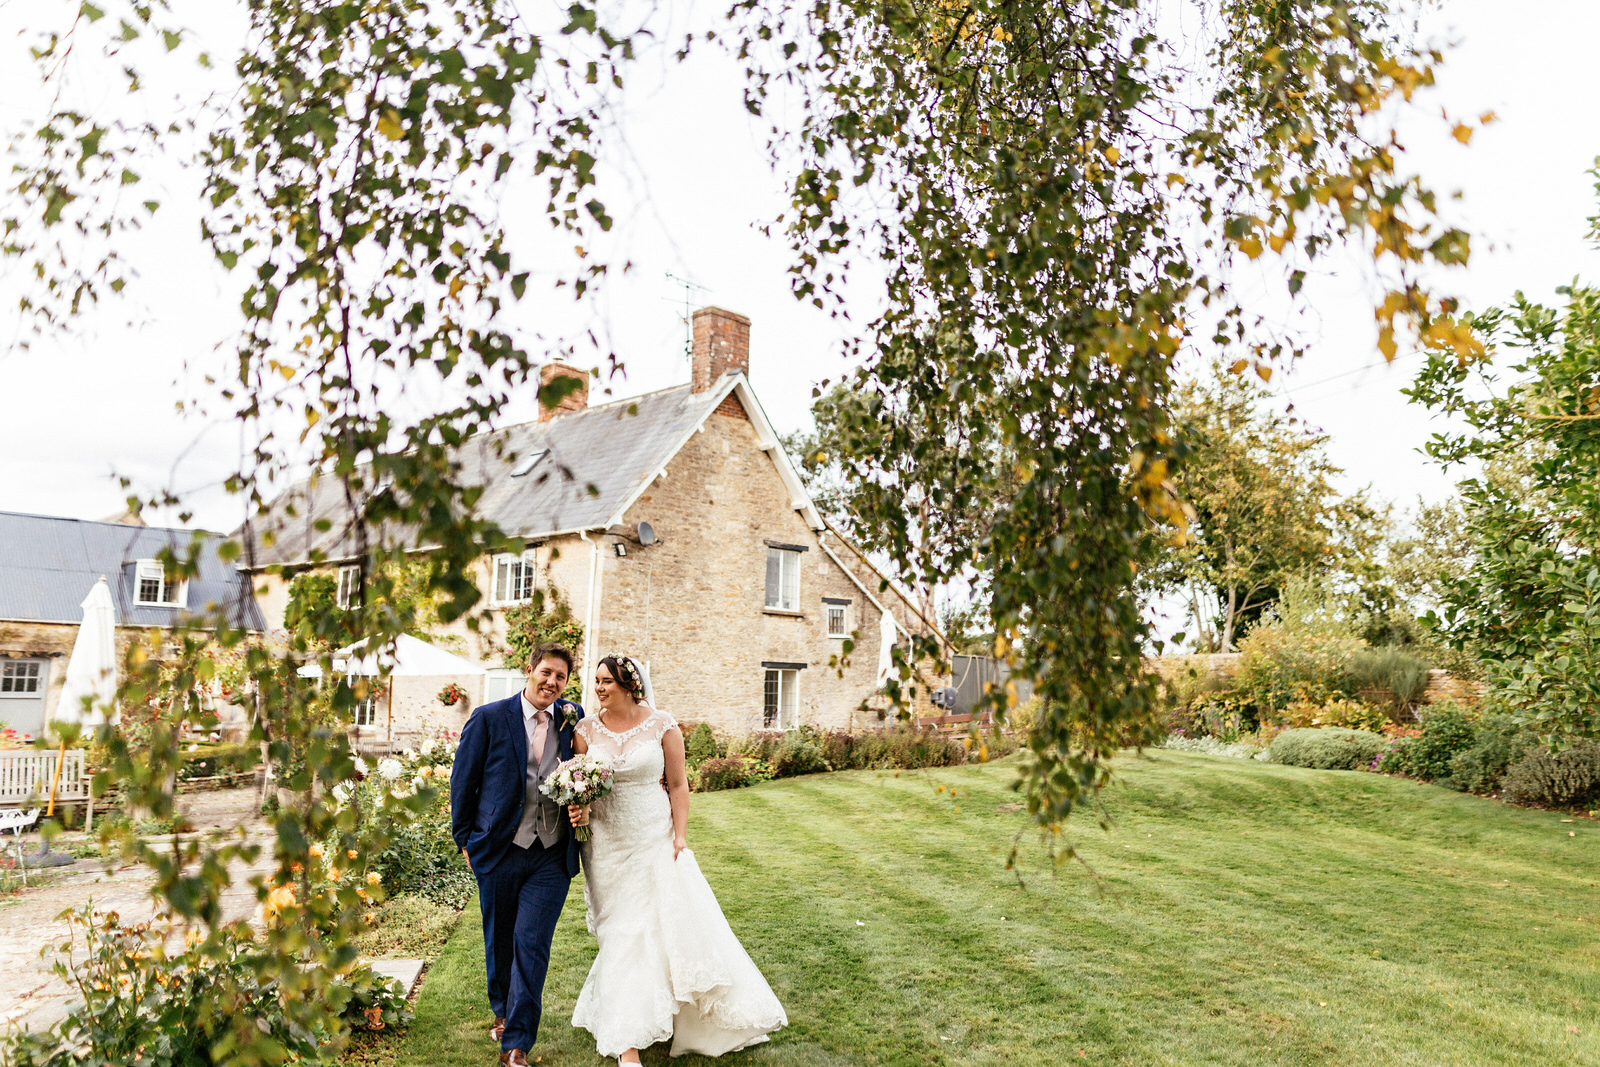 Winkworth-Farm-Wedding-Photographer-109.jpg